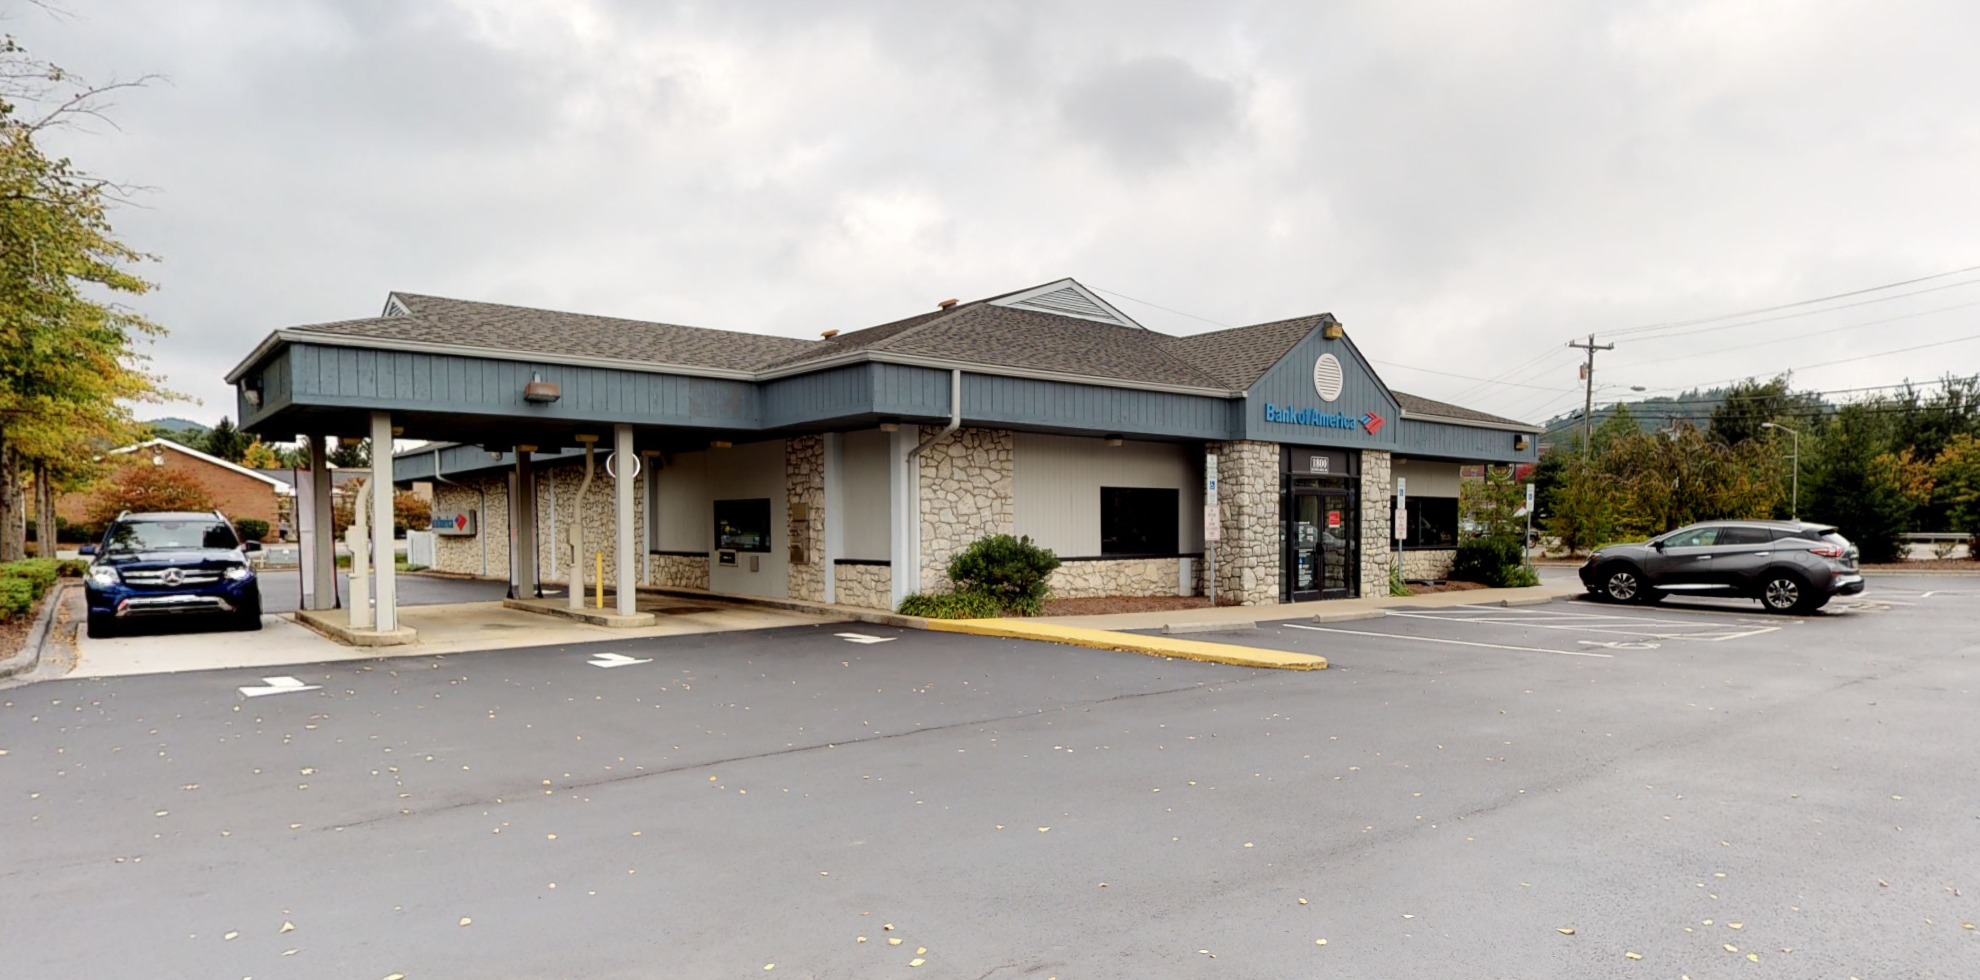 Bank of America financial center with drive-thru ATM and teller | 1800 Blowing Rock Rd, Boone, NC 28607